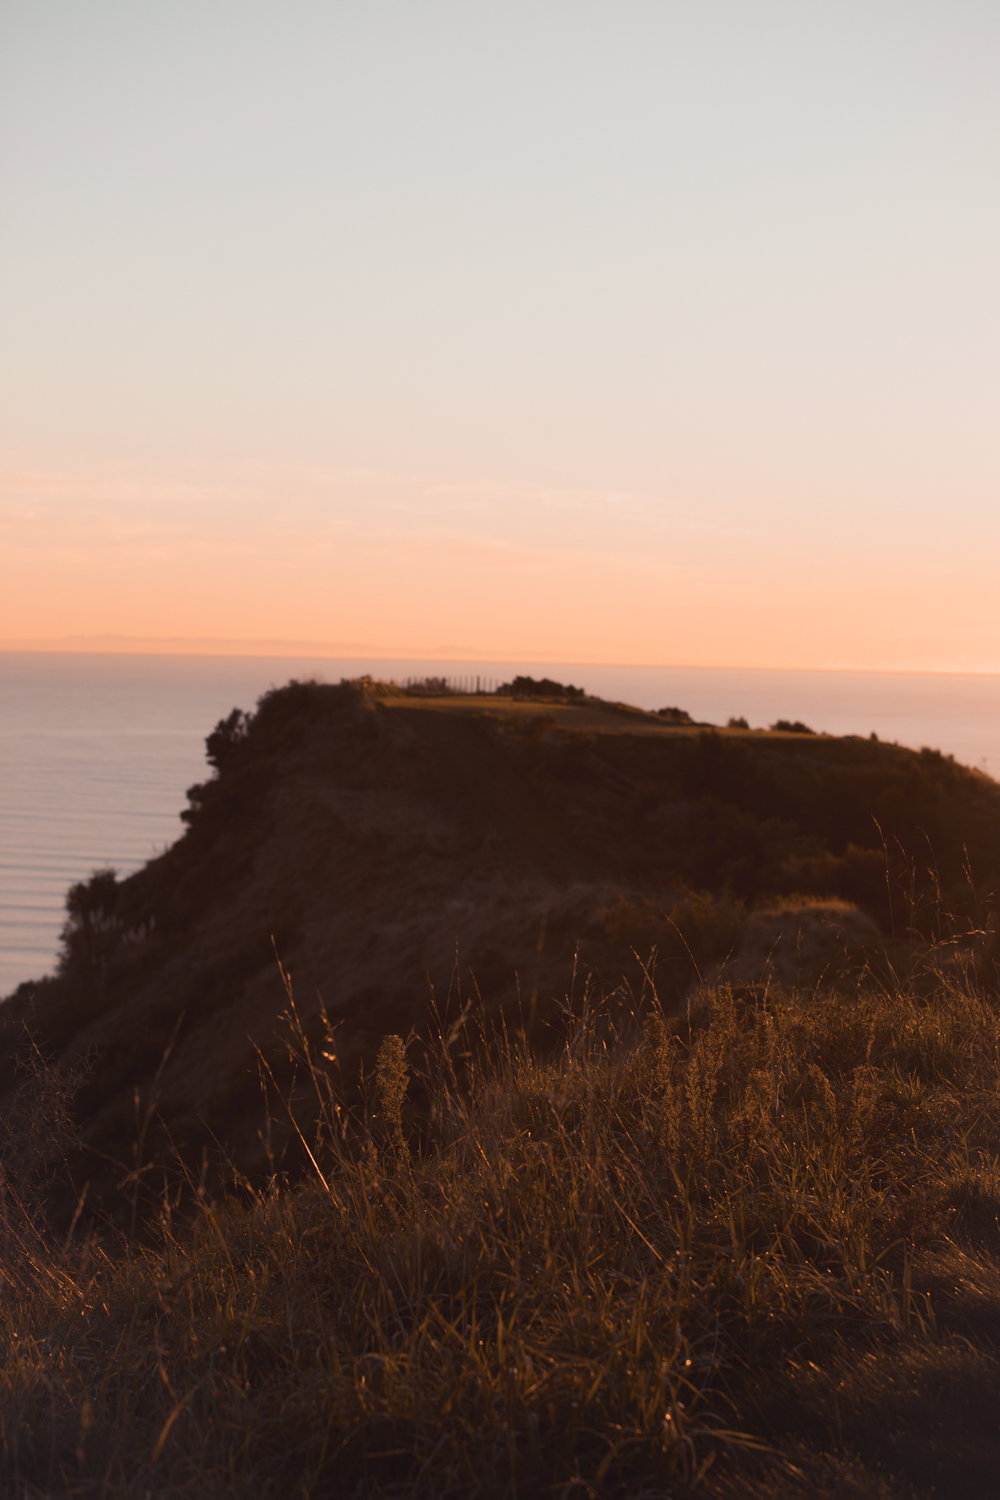 cape-kidnappers-golf-course-at-sunrise-hawkes-bay-new-zealand.jpg